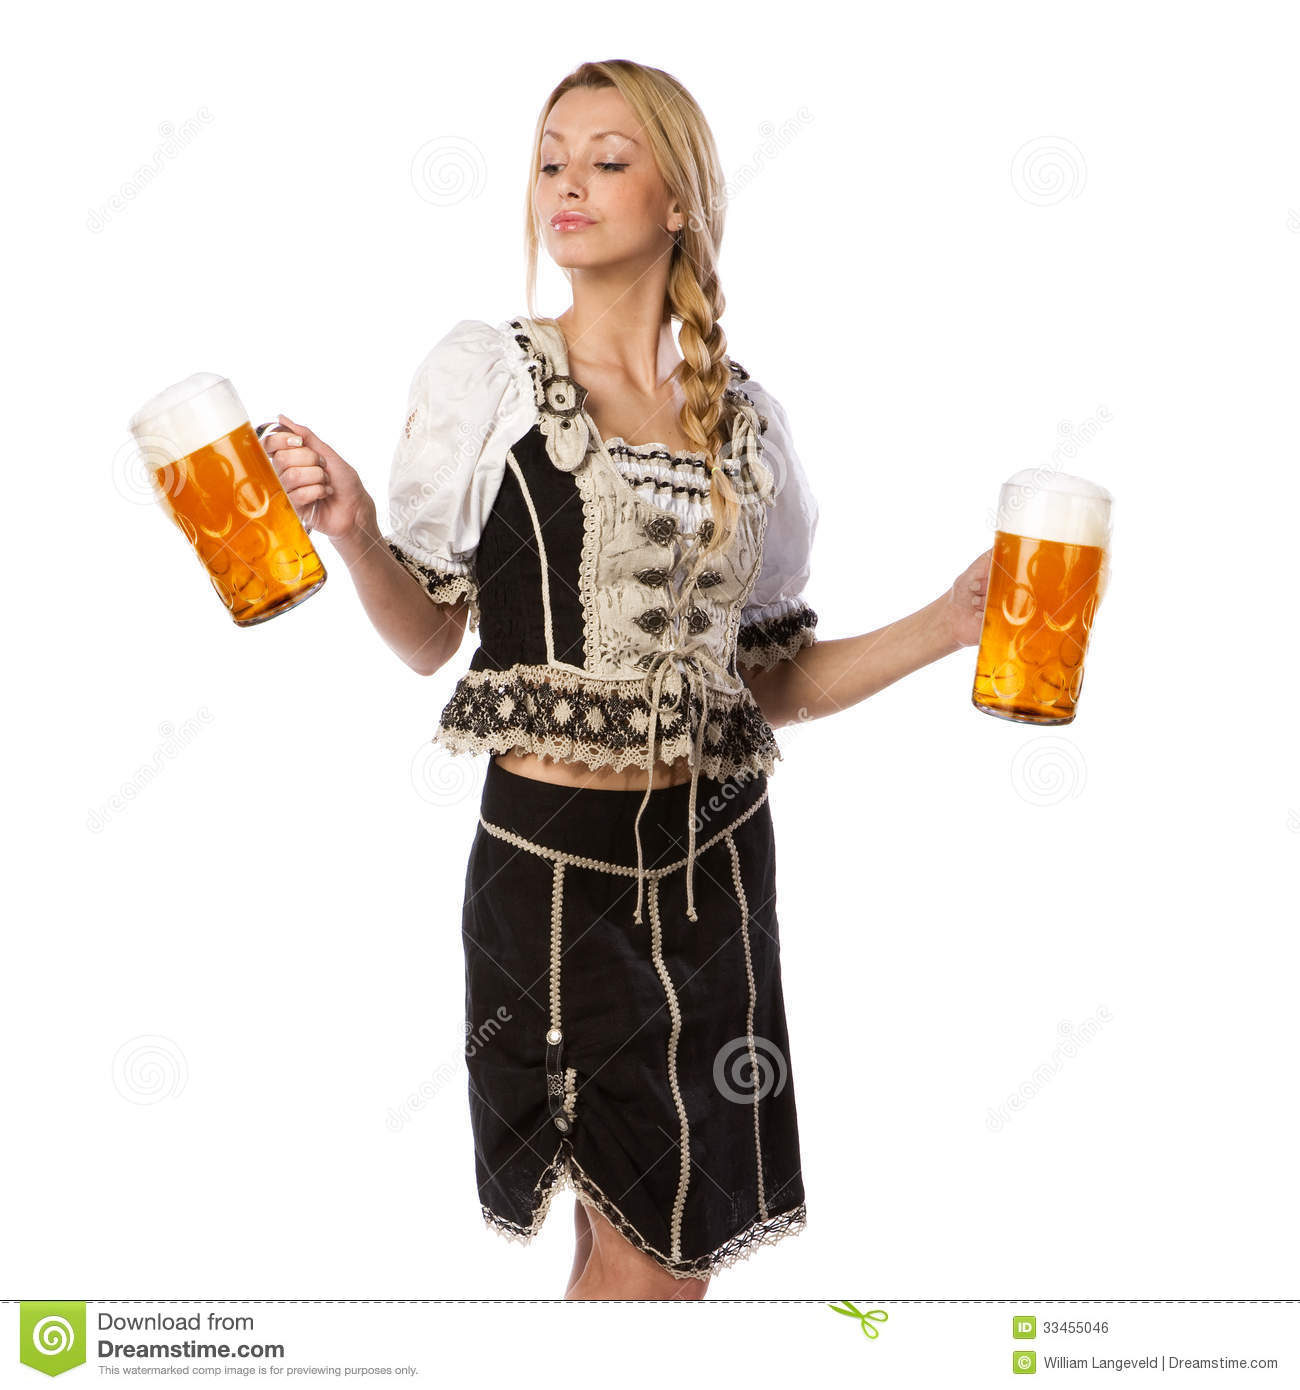 ... Woman In Tiroler Outfit Royalty Free Stock Image - Image: 33455046